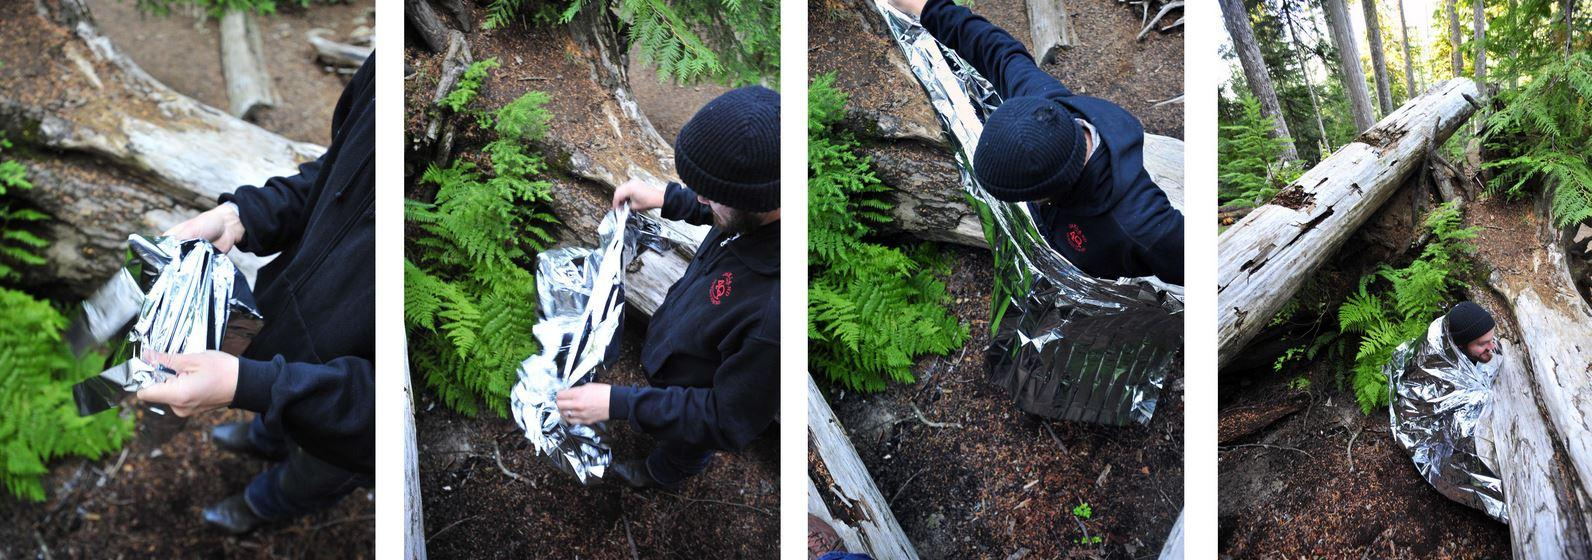 How to use the Emergency Space Blanket from Grabber.